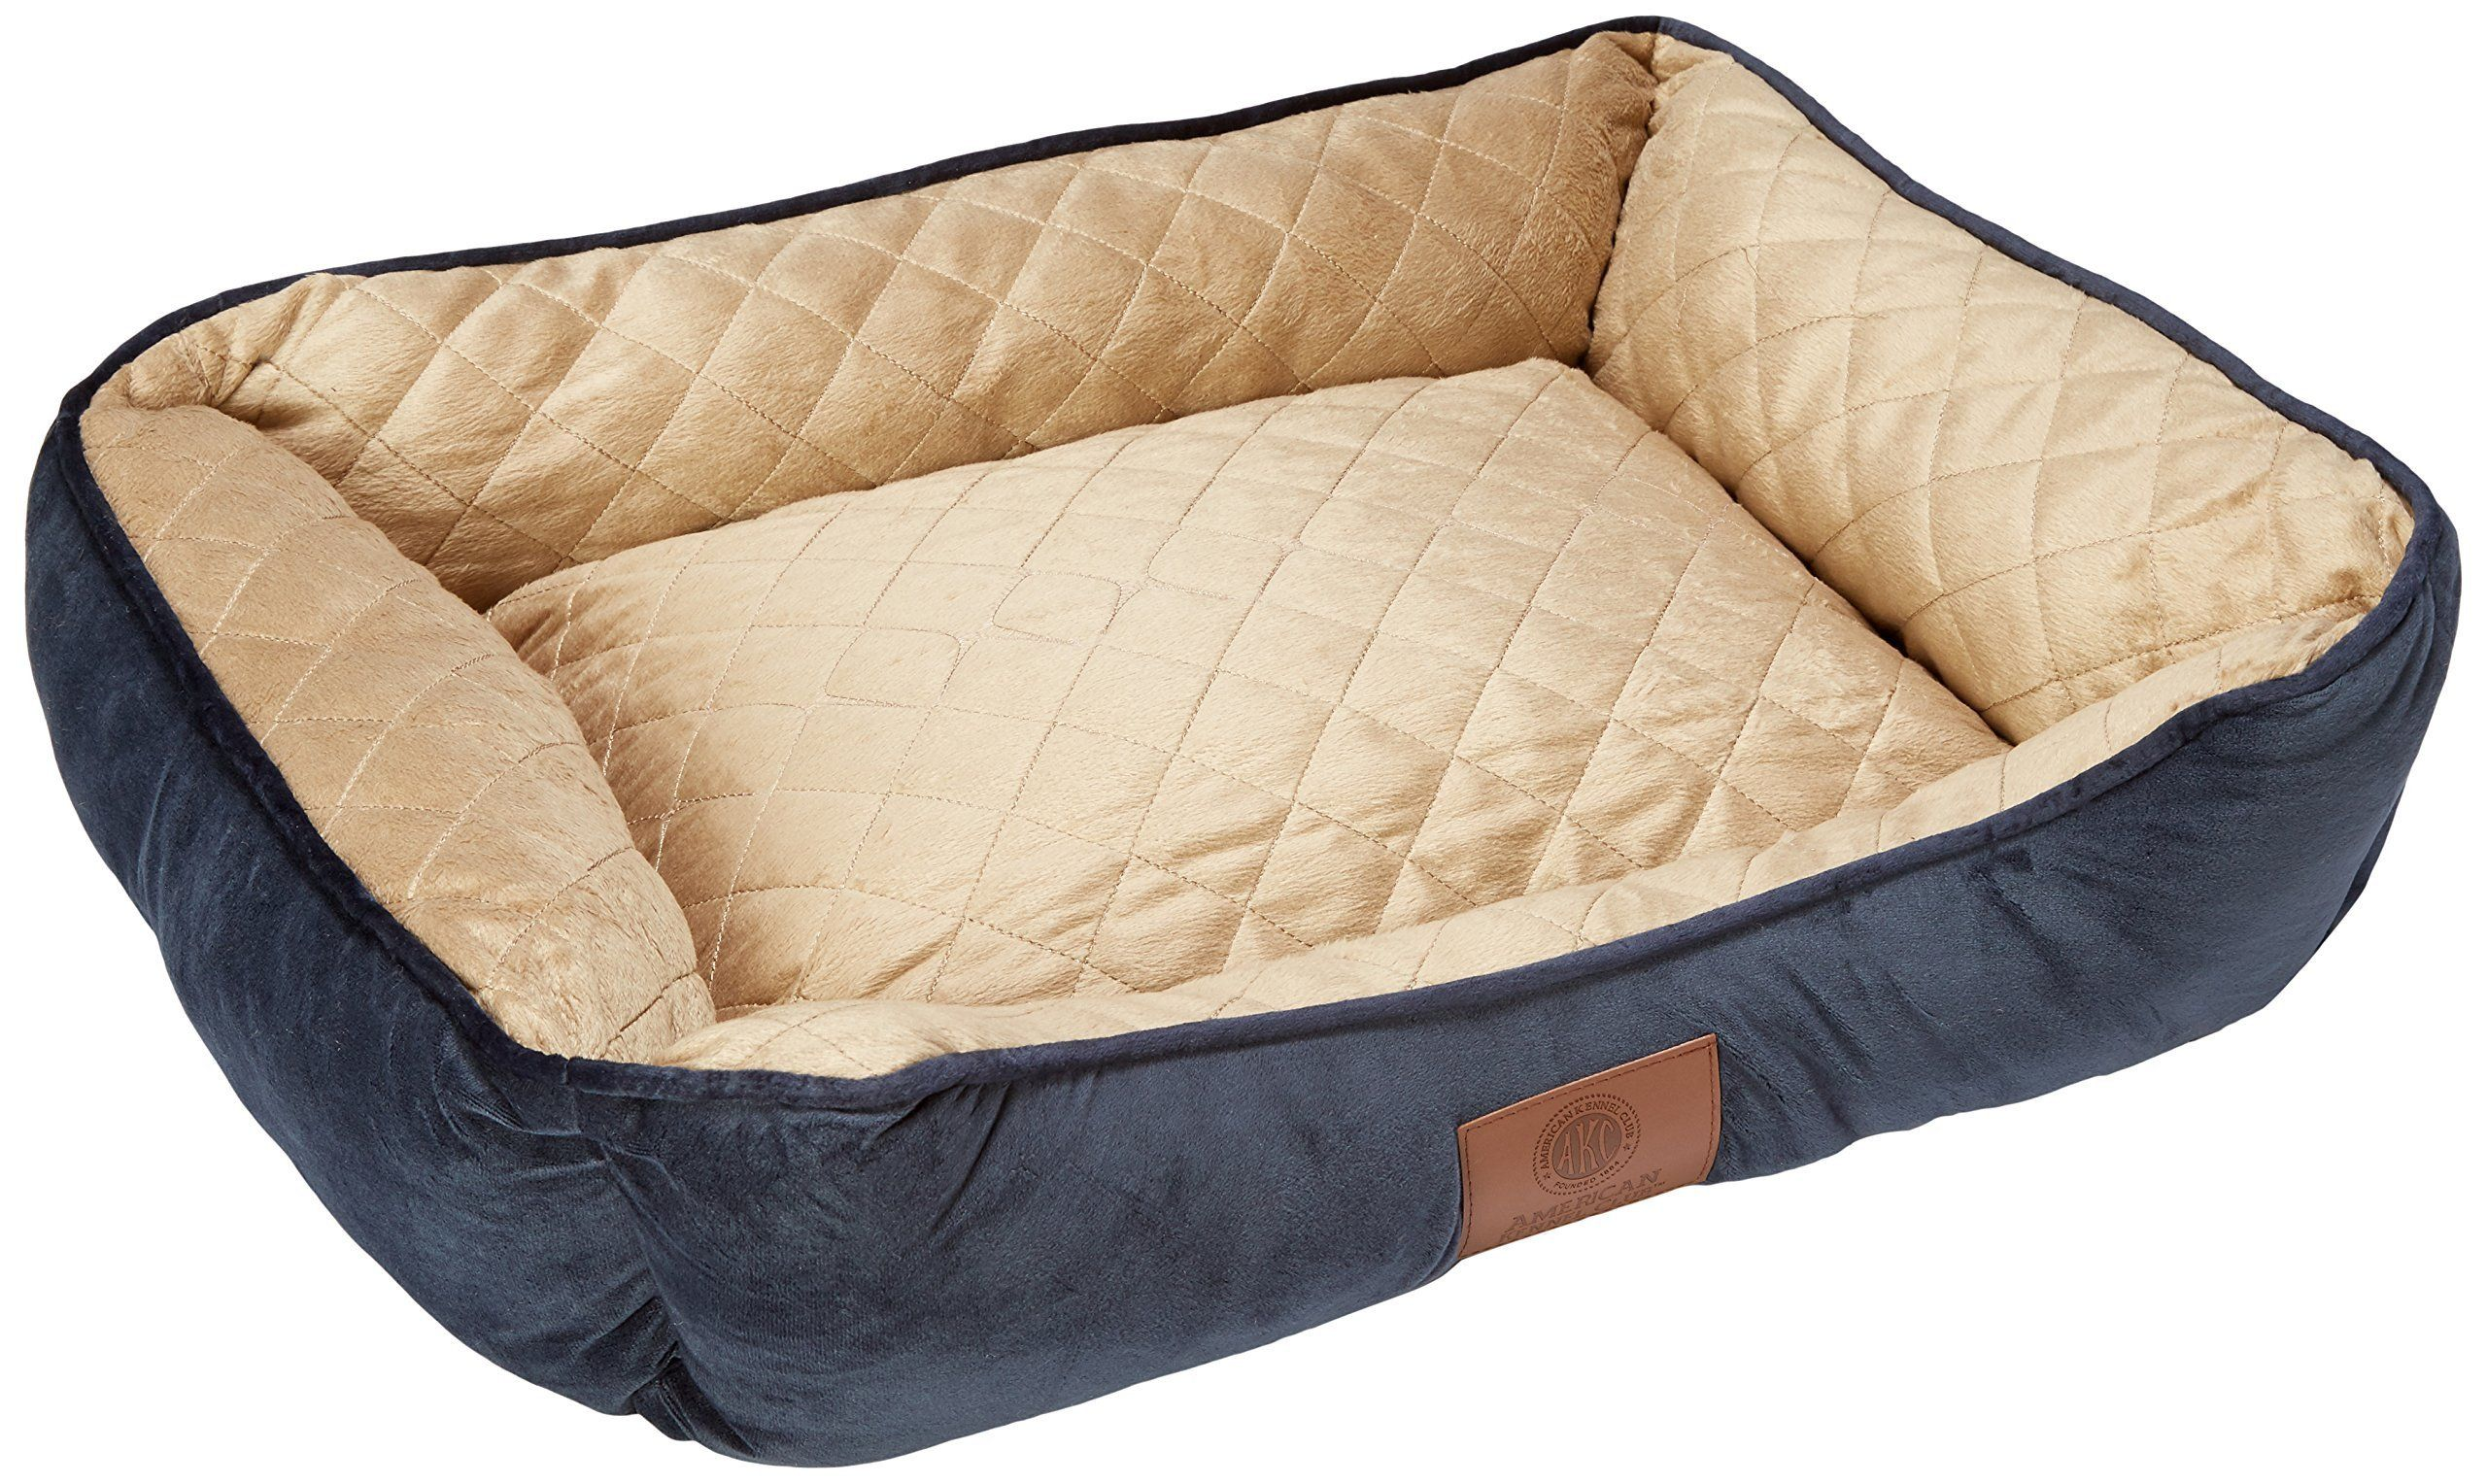 American Kennel Club Self Heating Solid Pet Bed Size 26x18x8 Navy